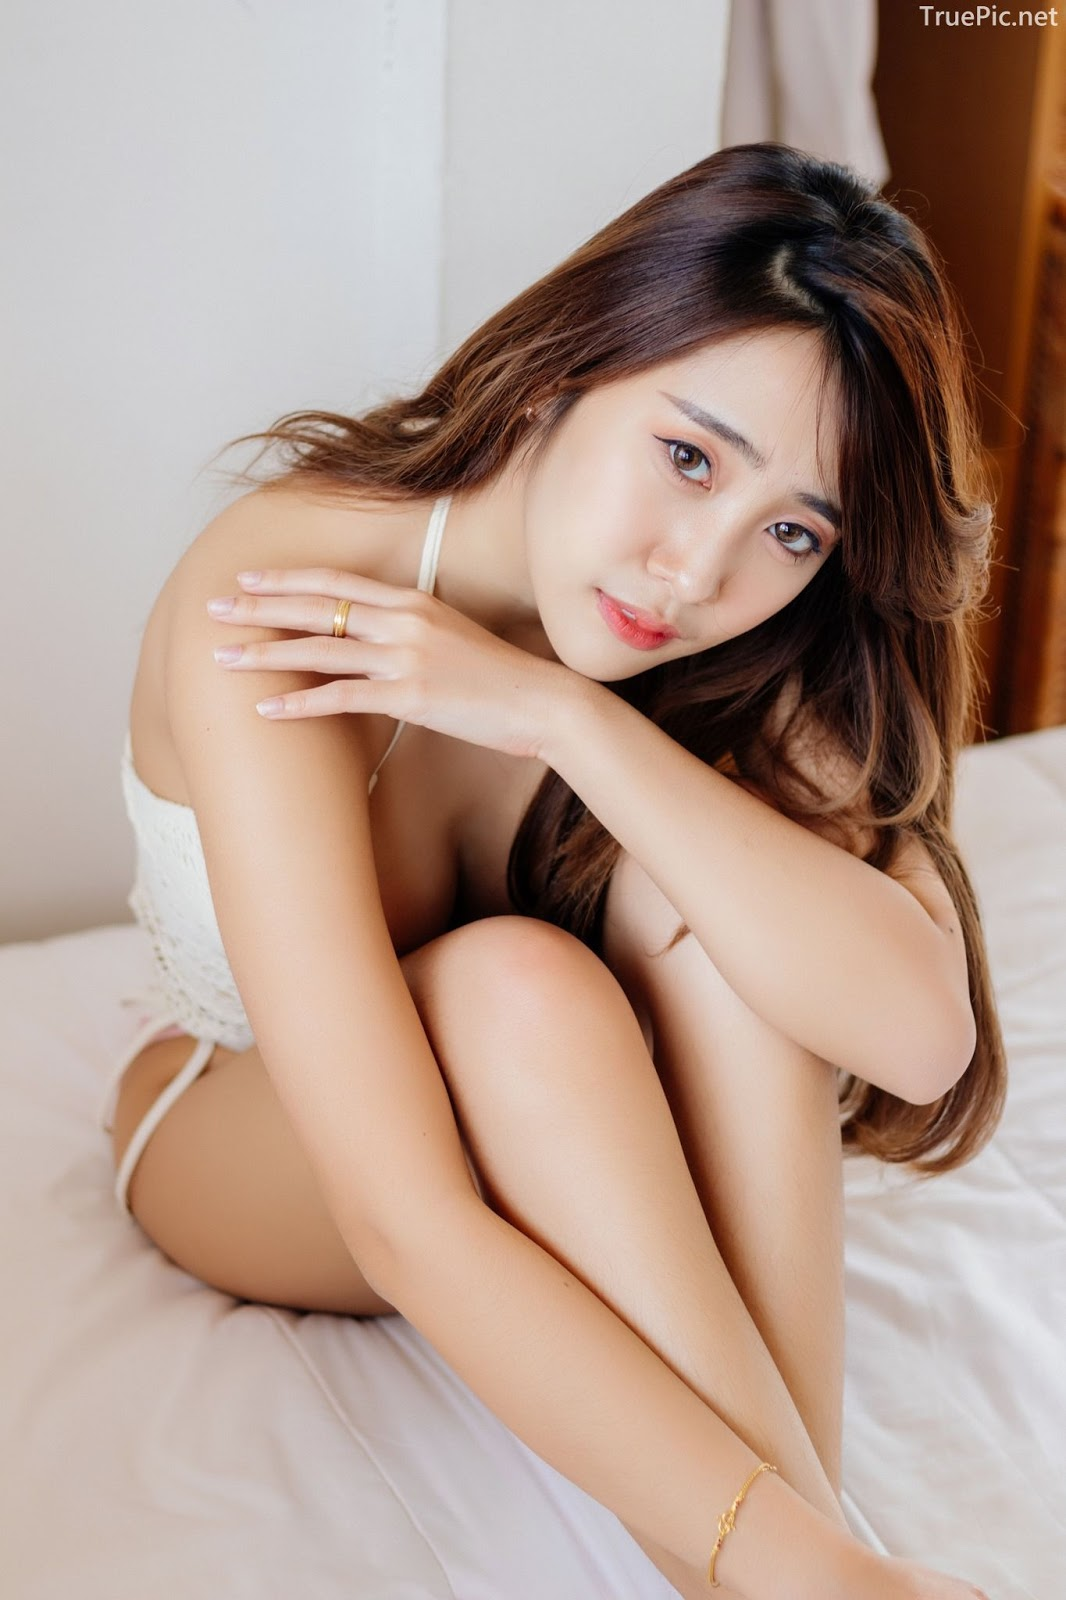 Thailand model Suneta Ngachalvy so sexy with album Bring me a Donut - Picture 2